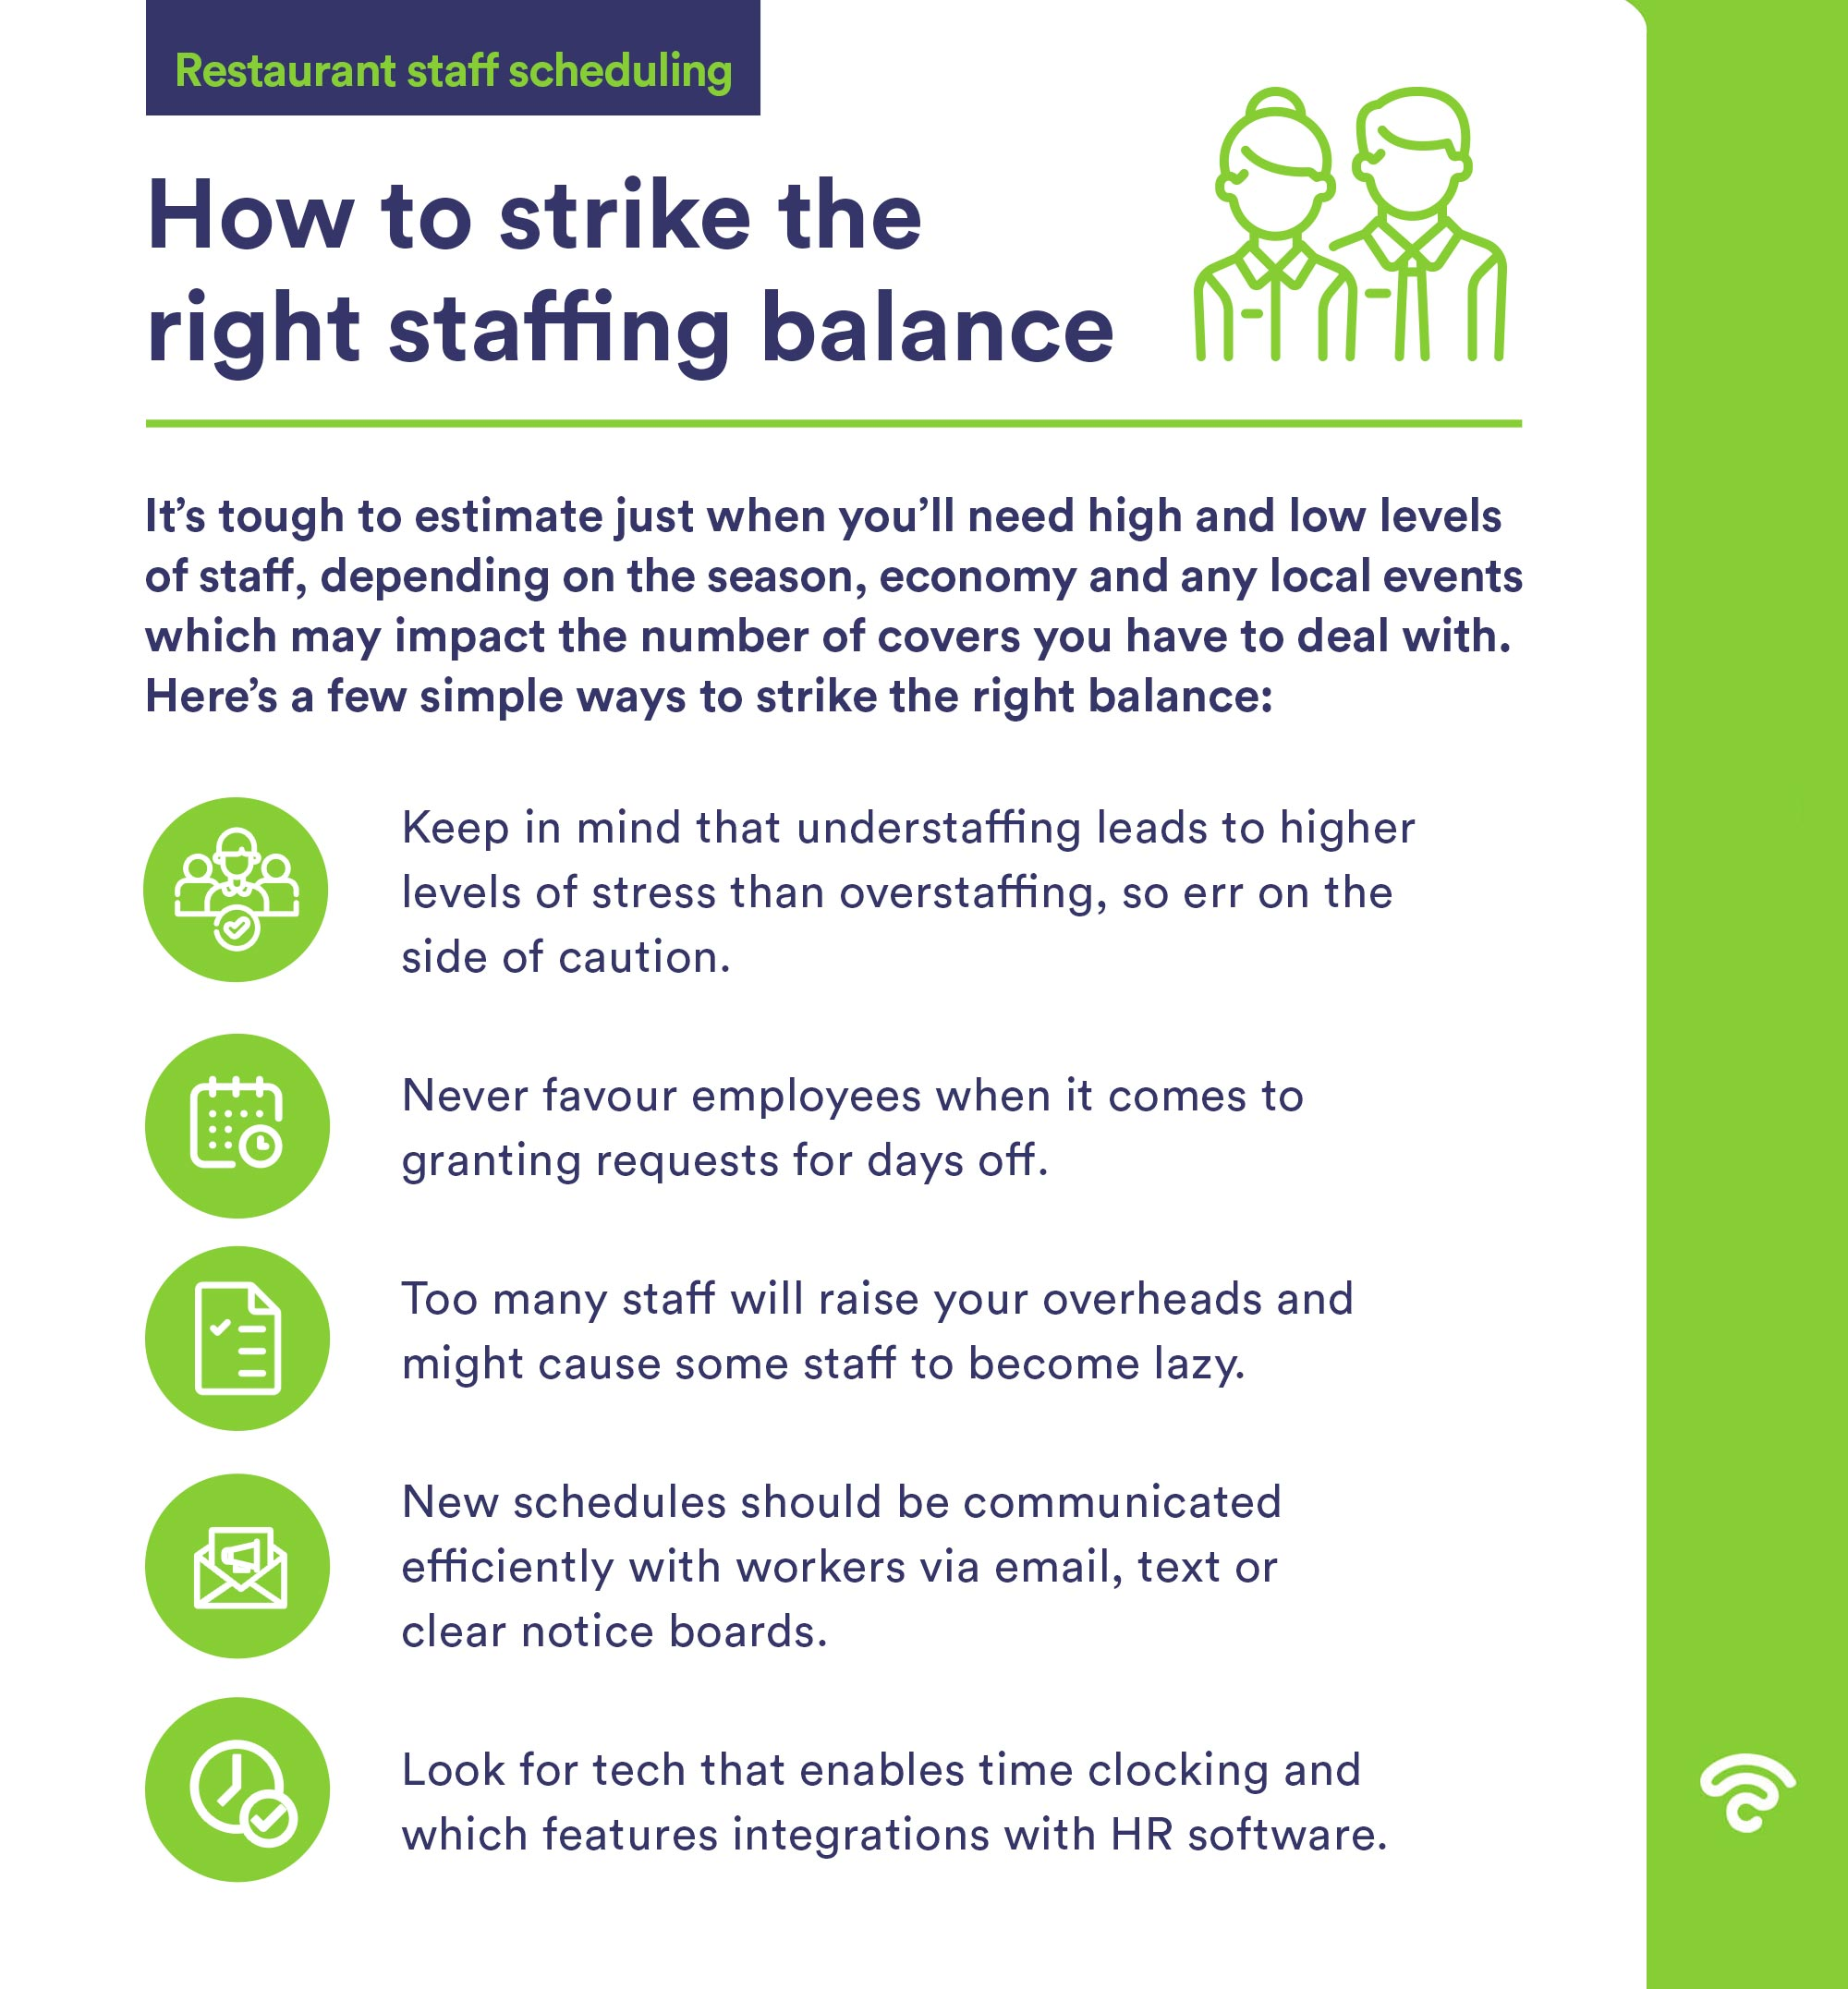 how to strike right staffing balance